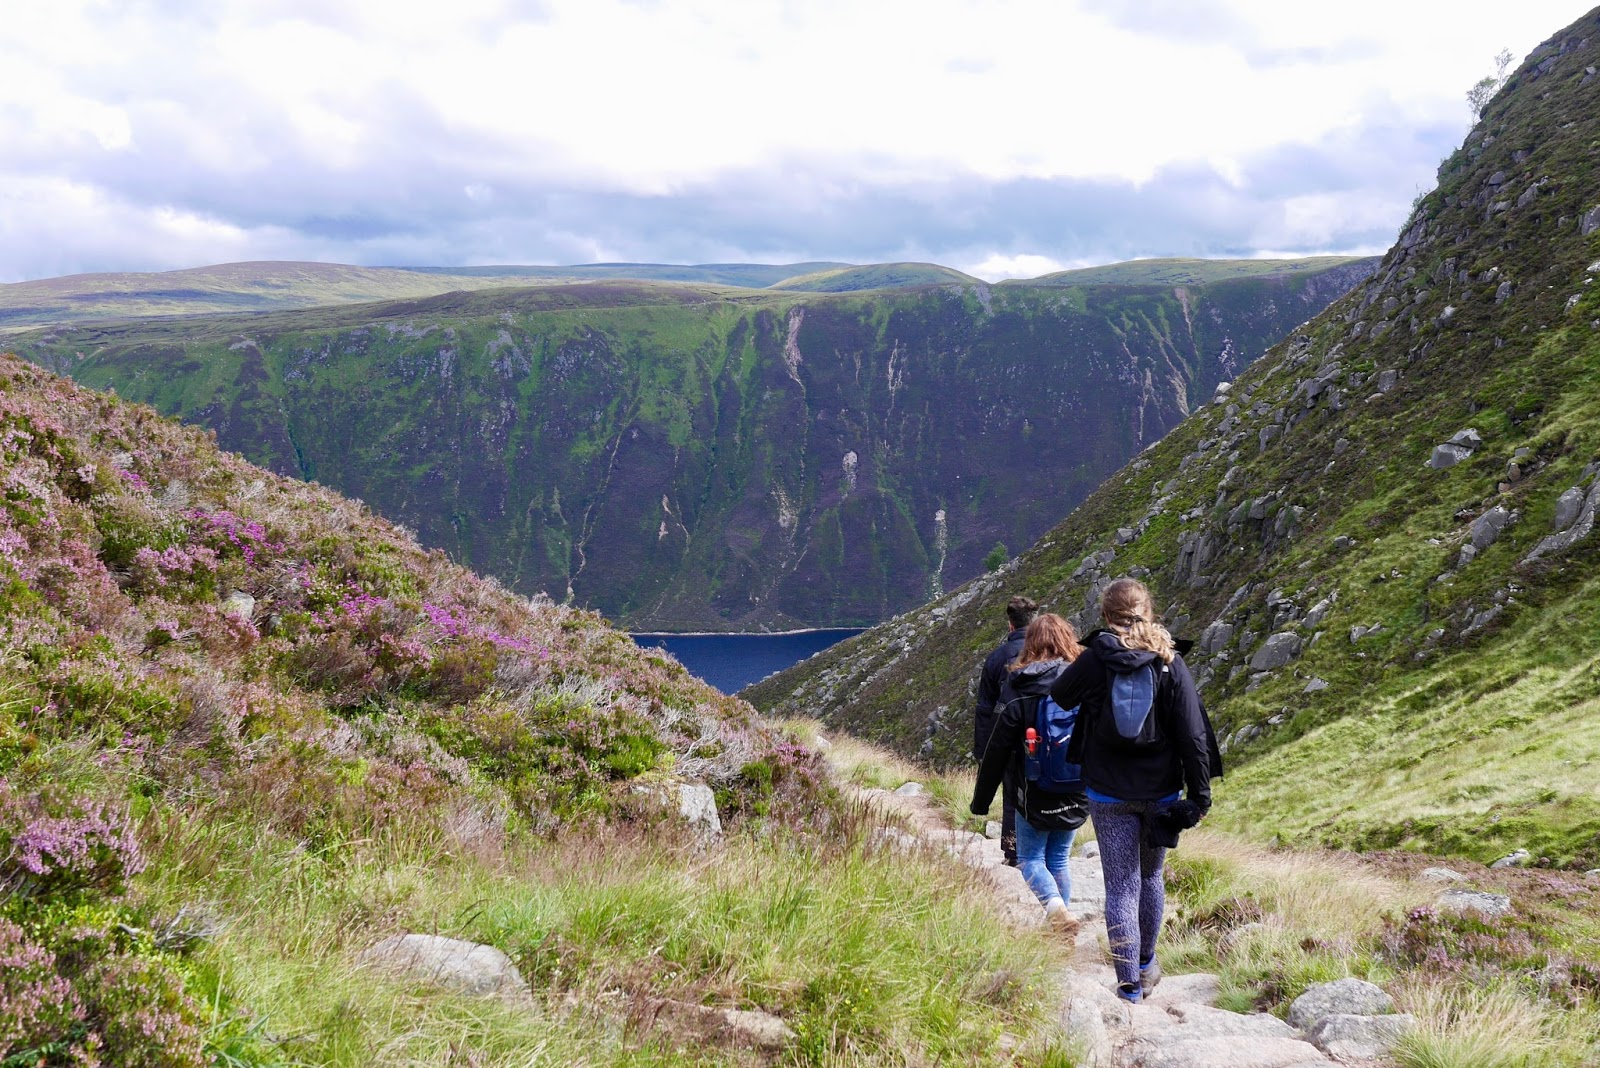 group hiking the Scottish mountains, Lochnagar Munro - Cal McTravel - www.calmctravels.com